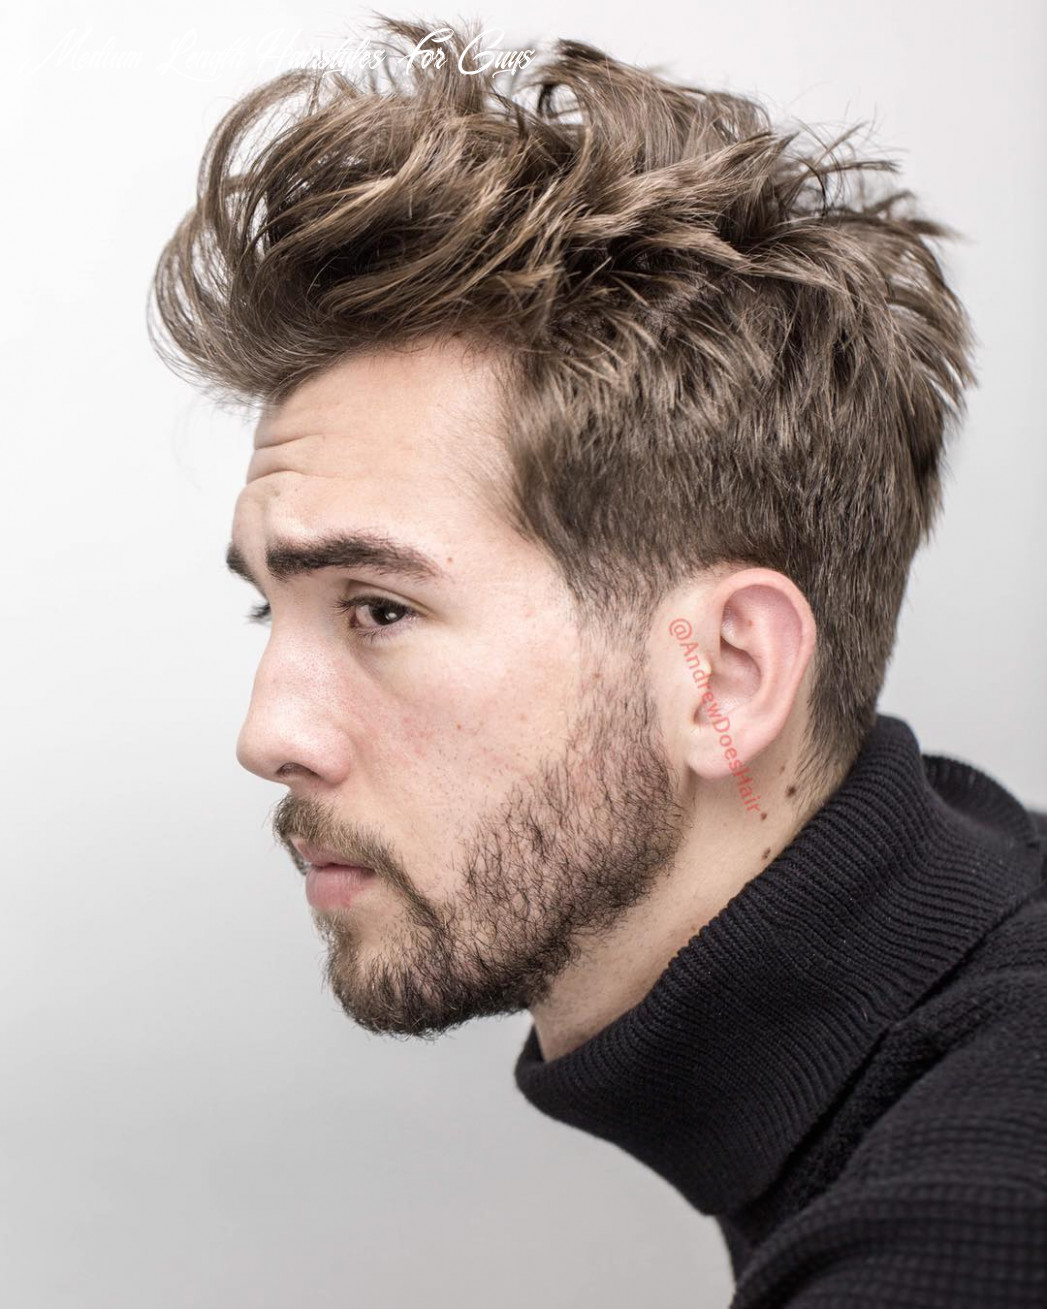 The 12 best medium length hairstyles for men | improb medium length hairstyles for guys